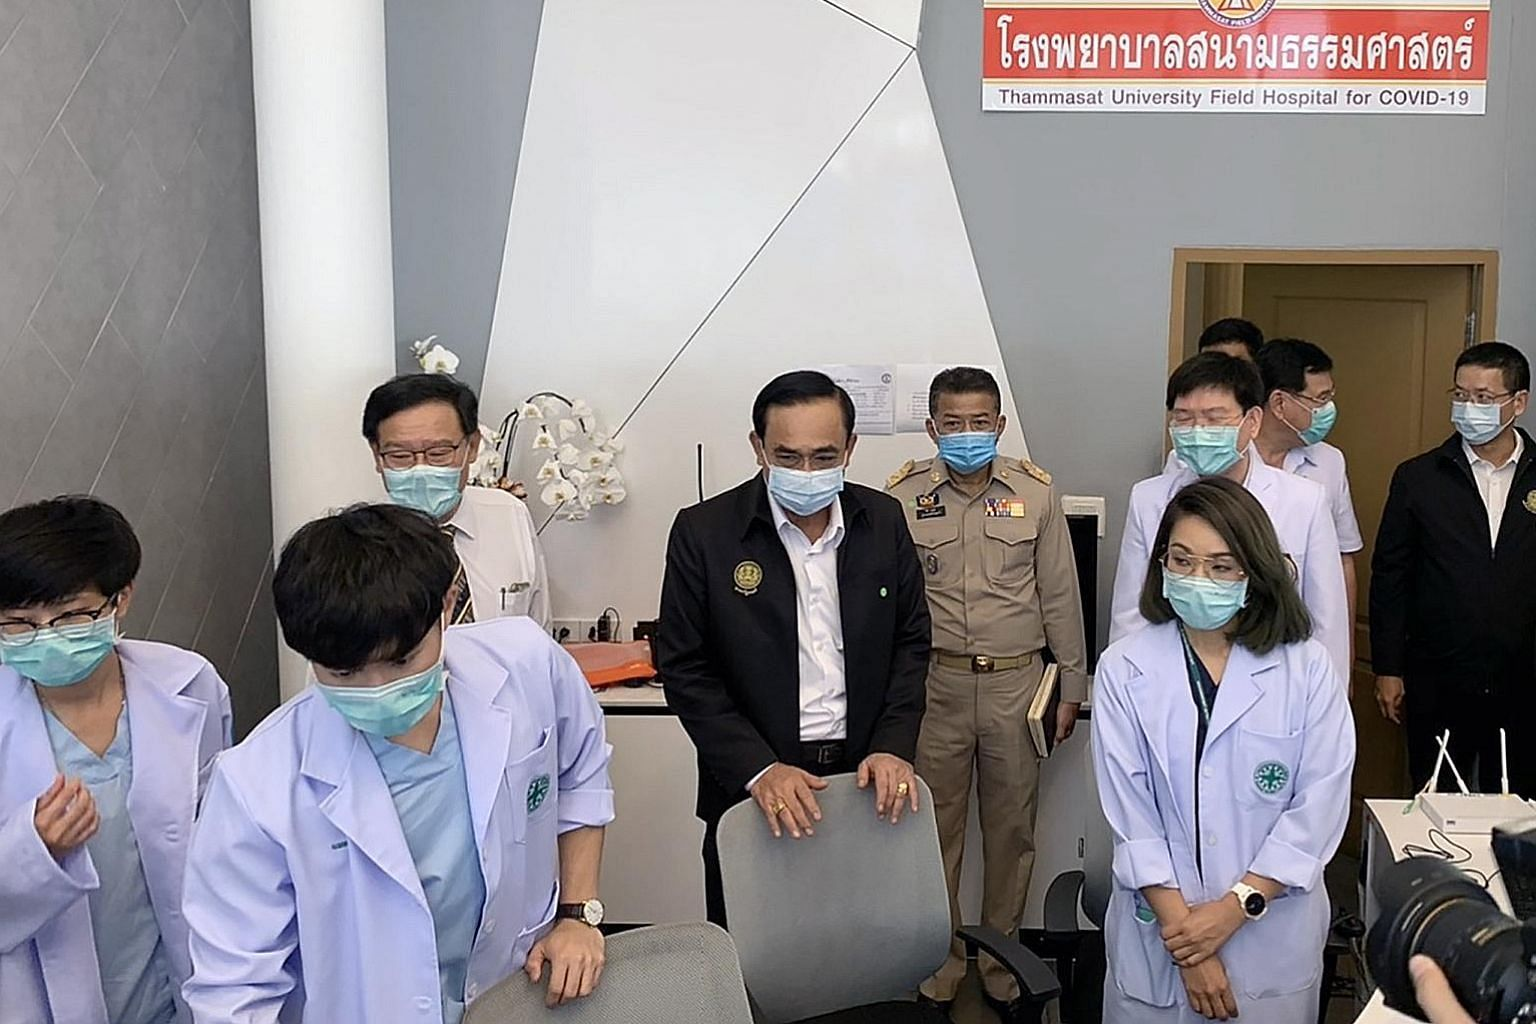 Thai Prime Minister Prayut Chan-o-cha (fourth from left) visiting the Thammasat University Field Hospital on Sunday. While Thailand is gaining control of the coronavirus situation, its economy could shrink 6.7 per cent this year.